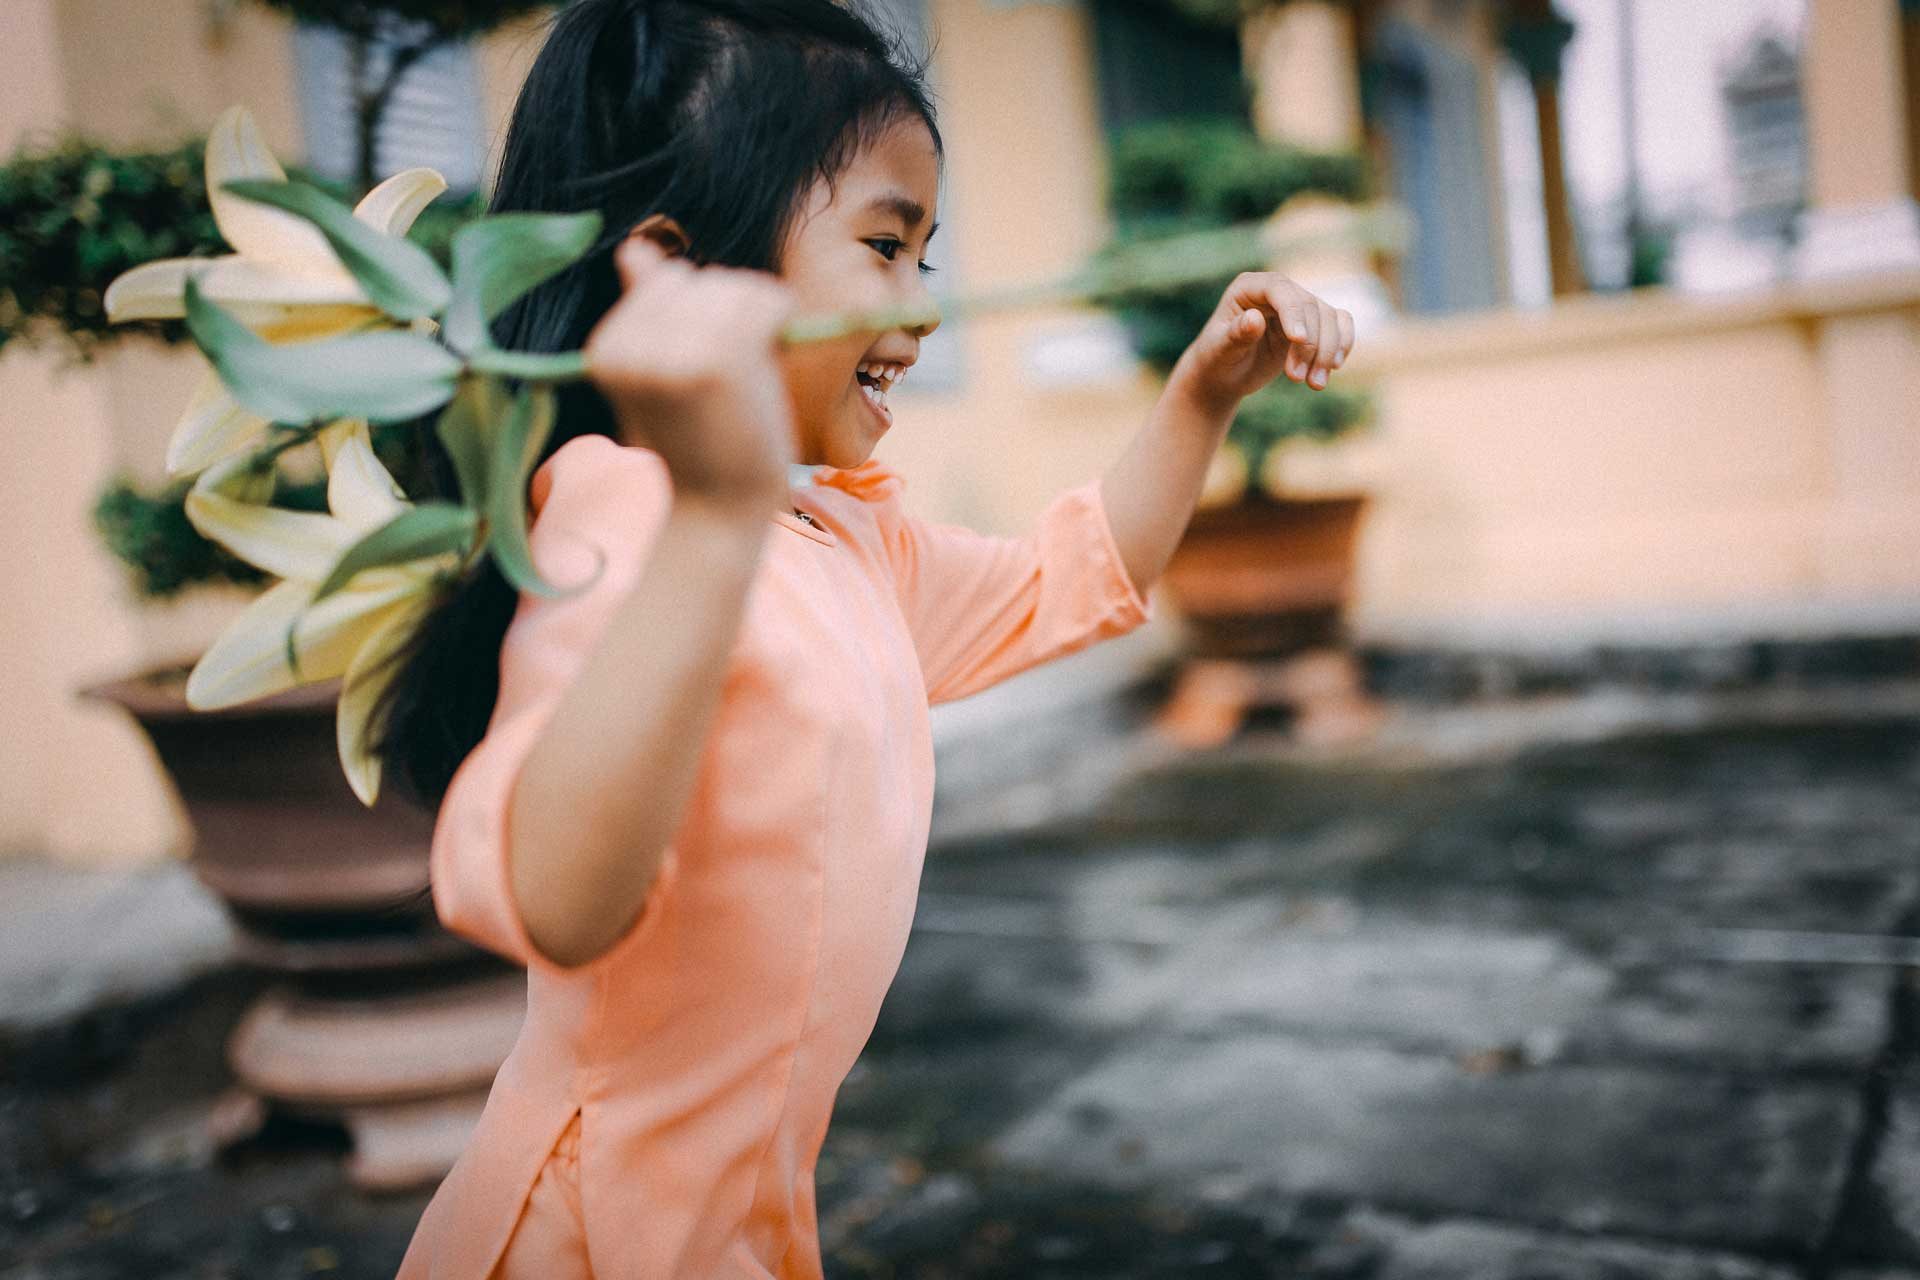 young girl in peach dress running with flower